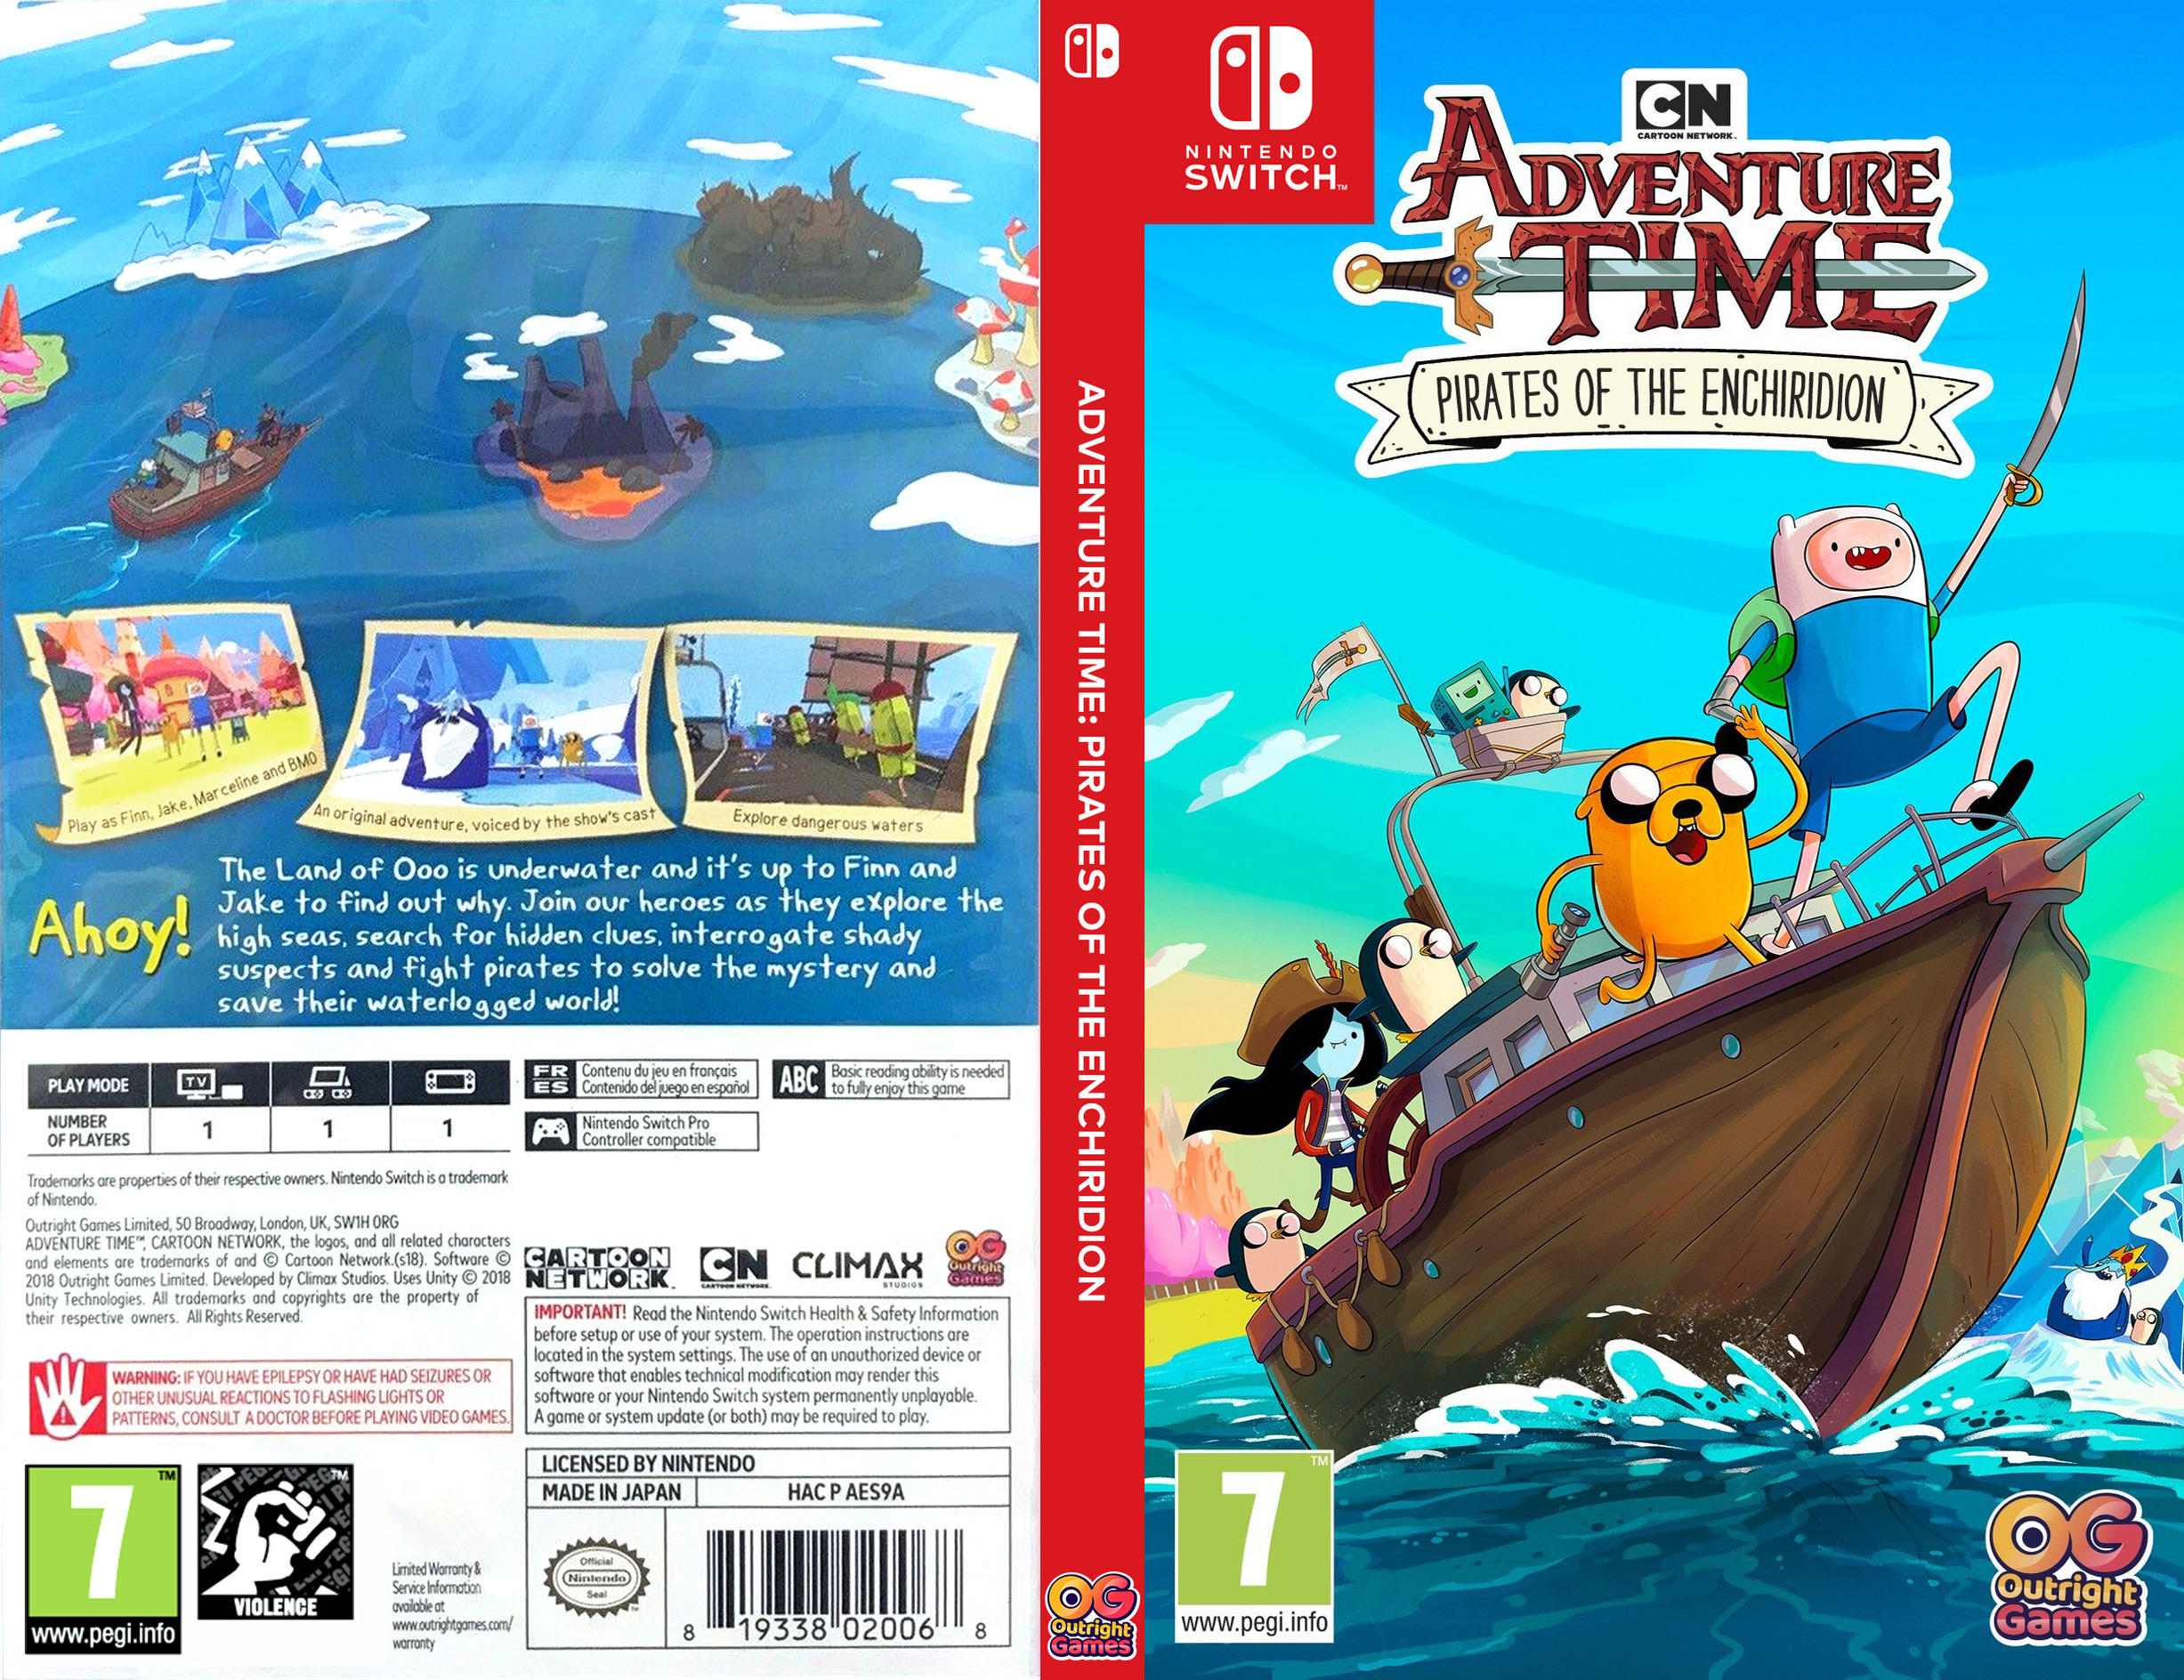 AES9A - Adventure Time - Pirates of the Enchiridion